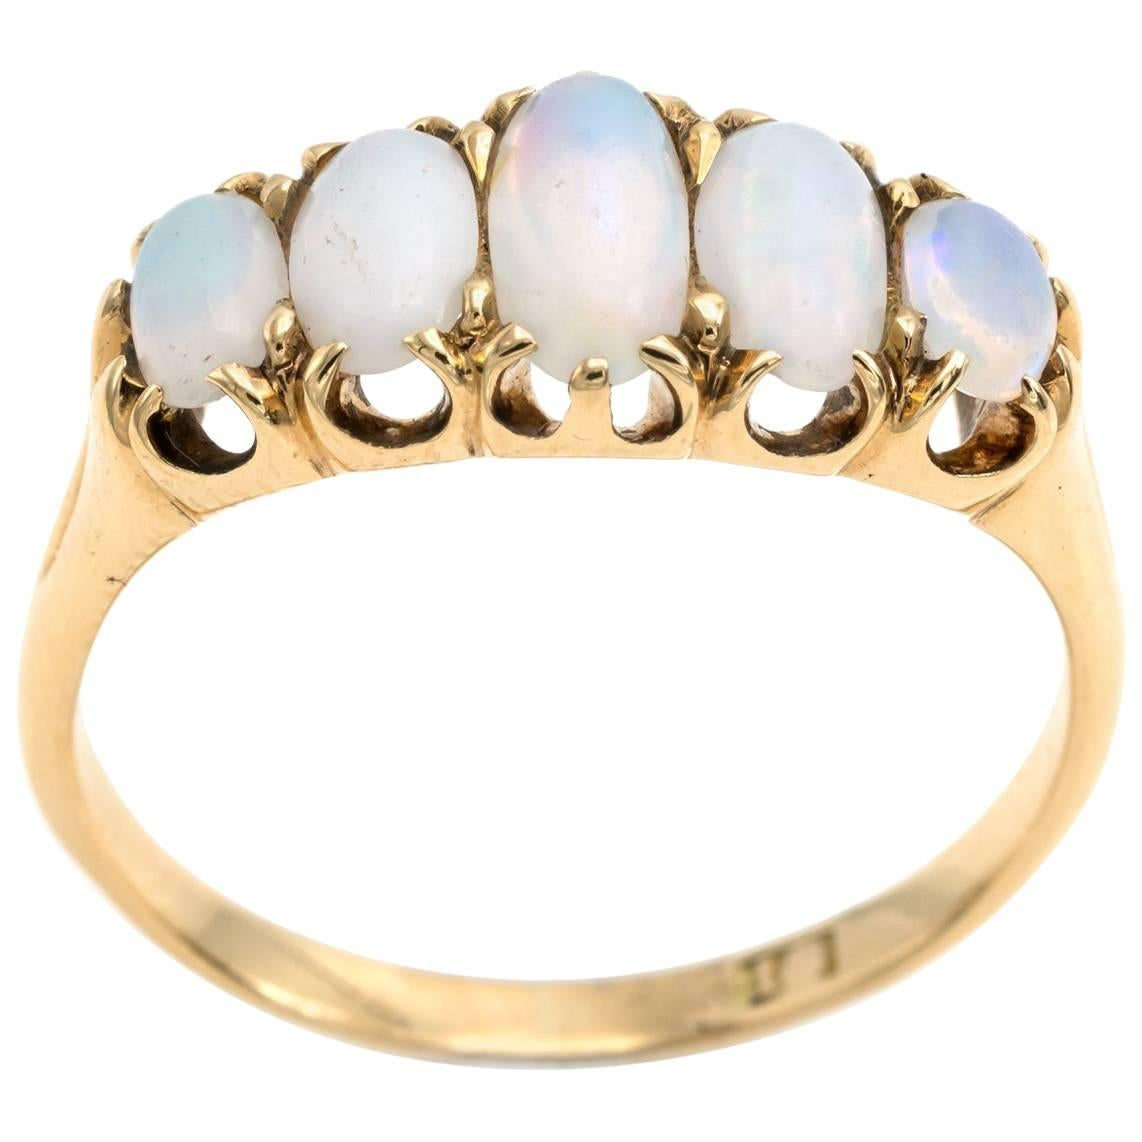 Antique Five Oval Opal Ring 18 Karat Yellow Gold